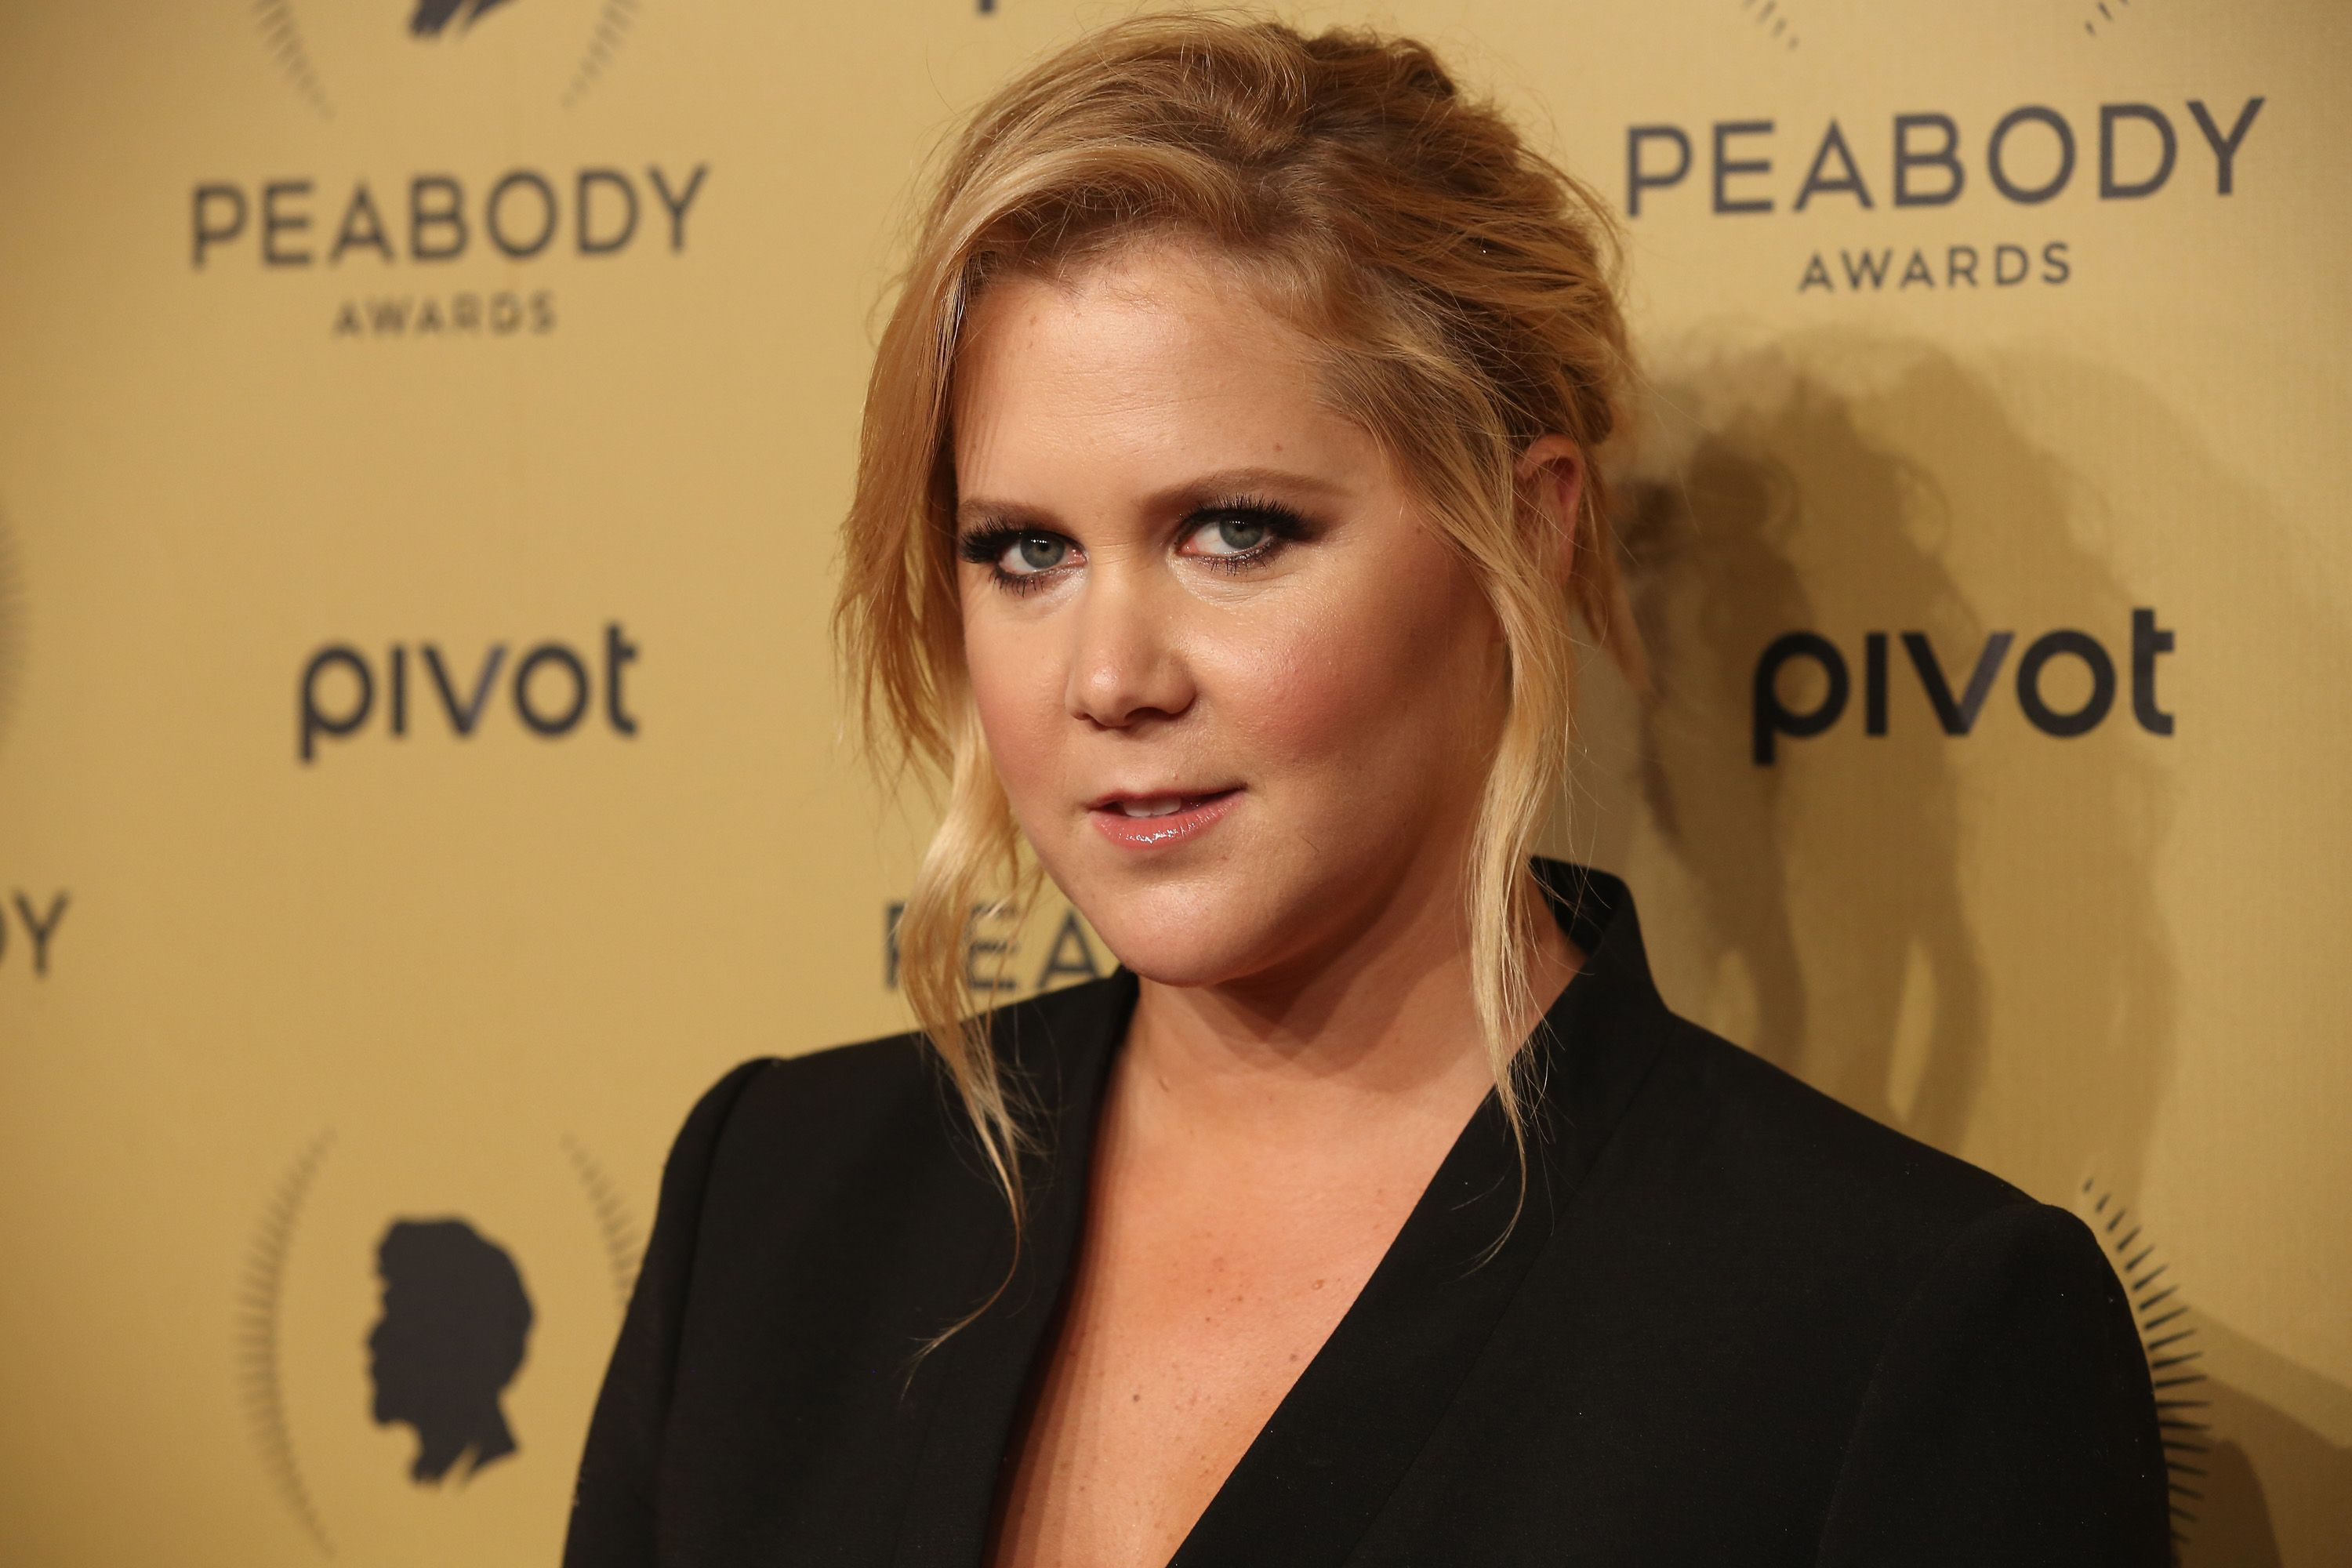 Amy Schumer at The 74th Annual Peabody Awards Ceremony at Cipriani Wall Street on May 31, 2015 in New York City | Photo: Getty Images